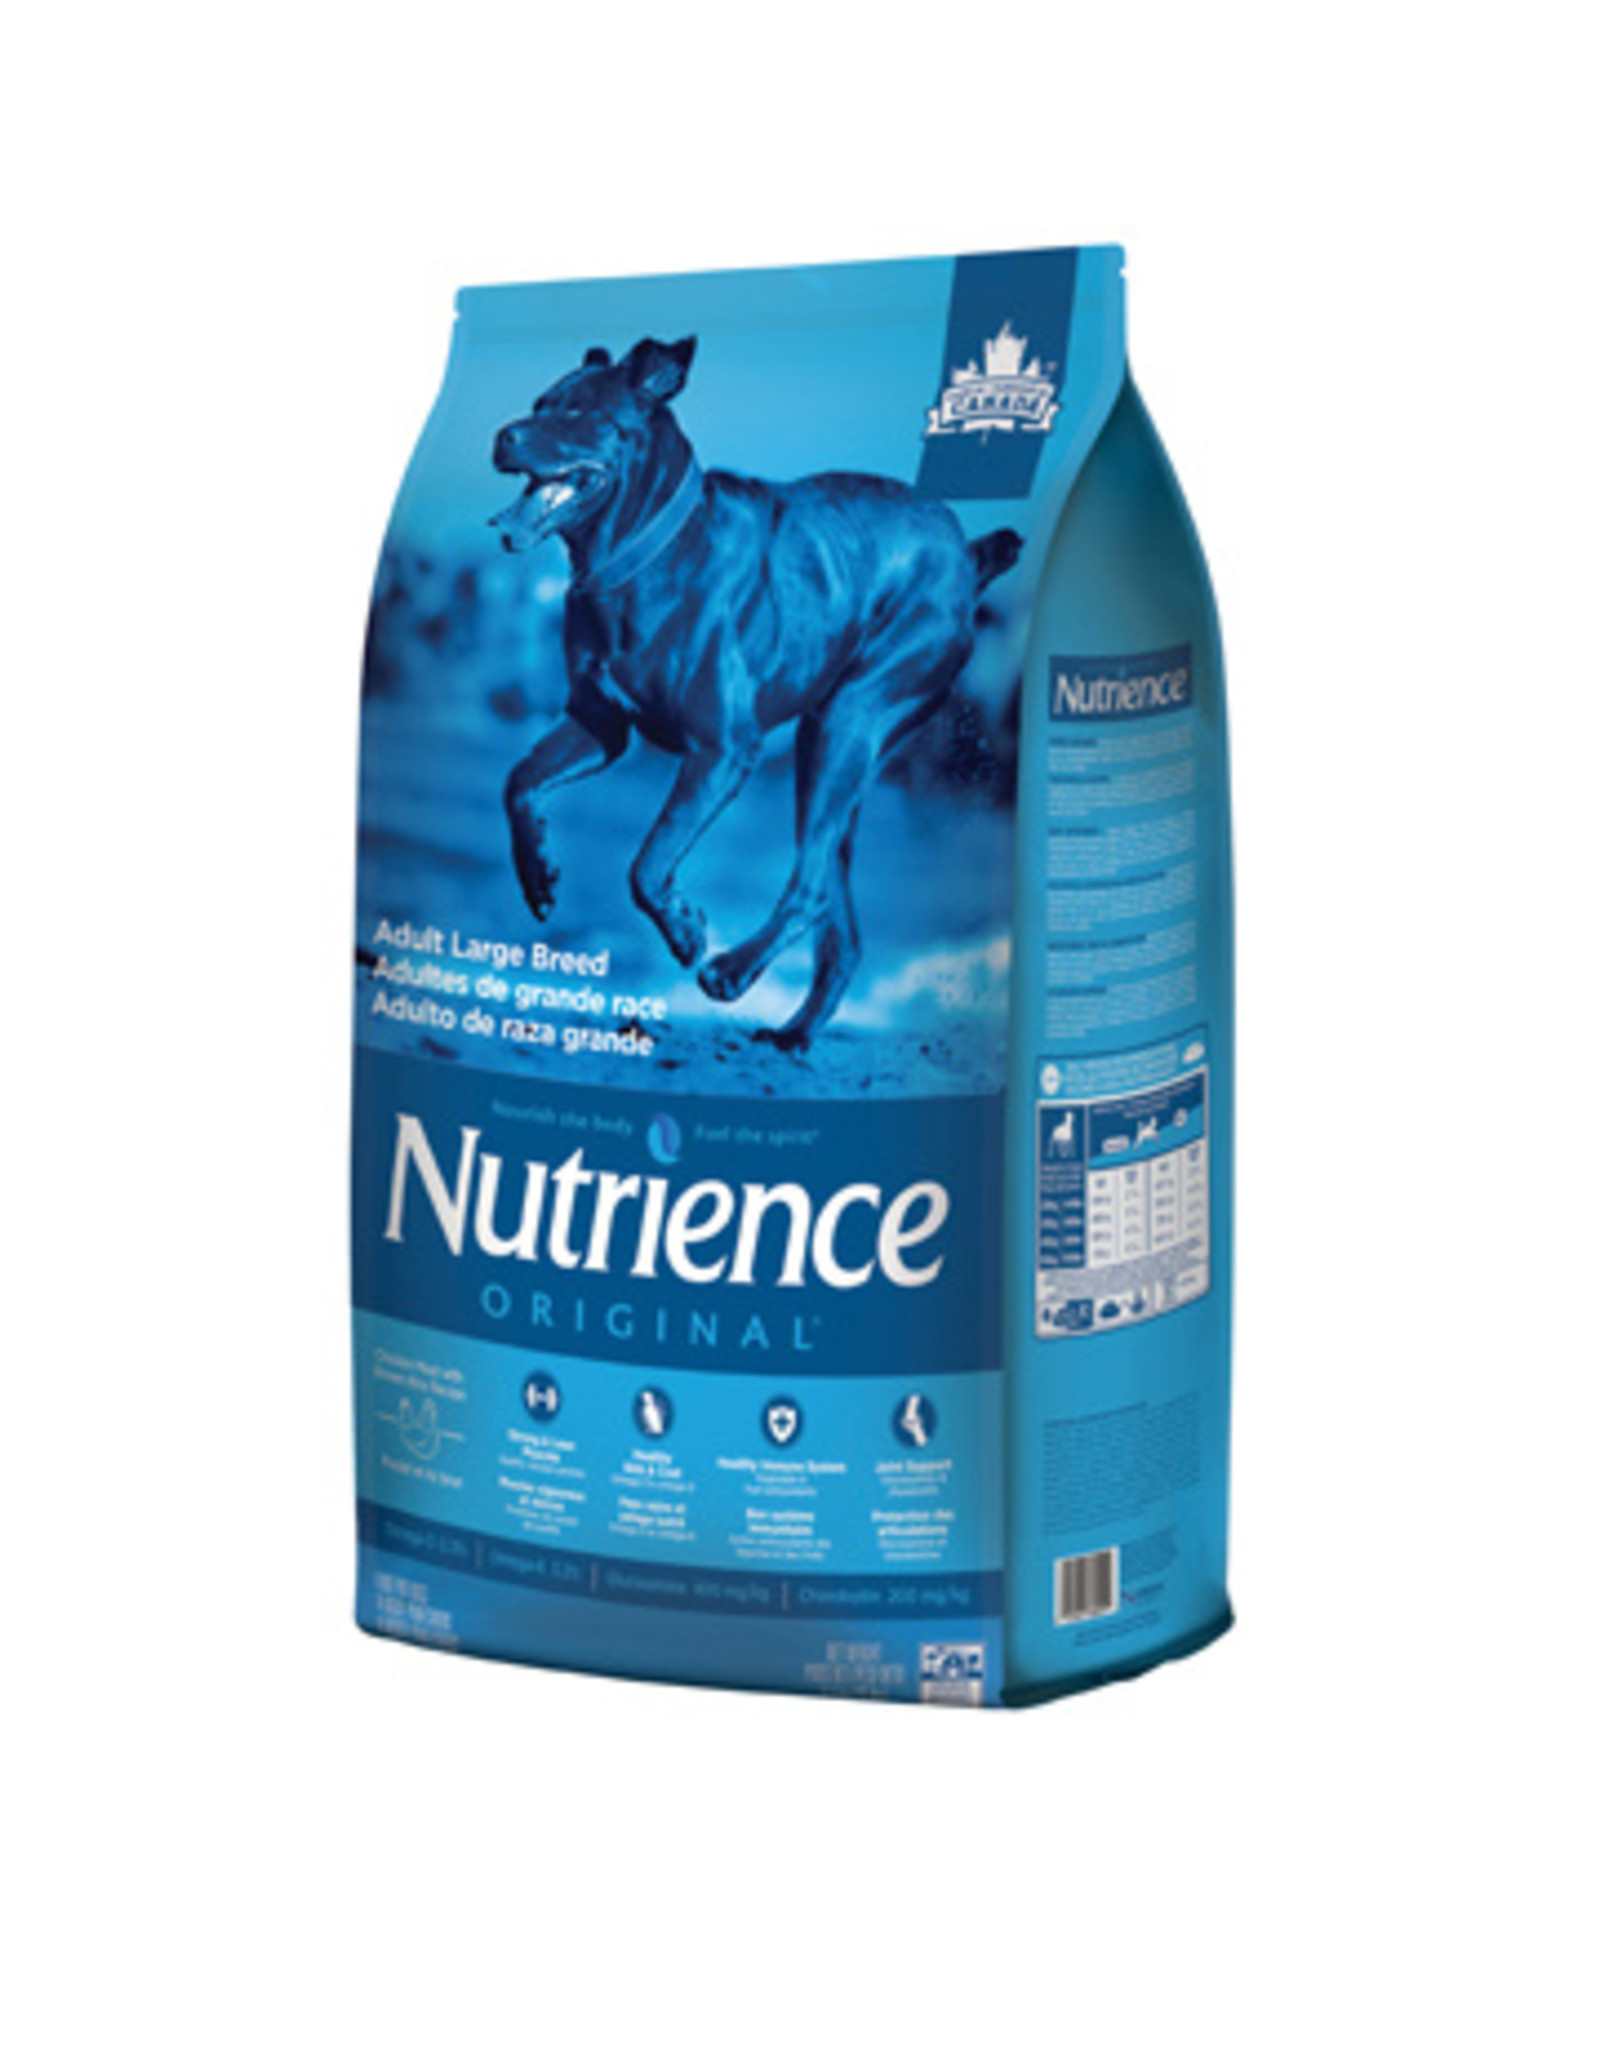 Nutrience Nutrience Original Adult Large Breed Chicken 11.5kg